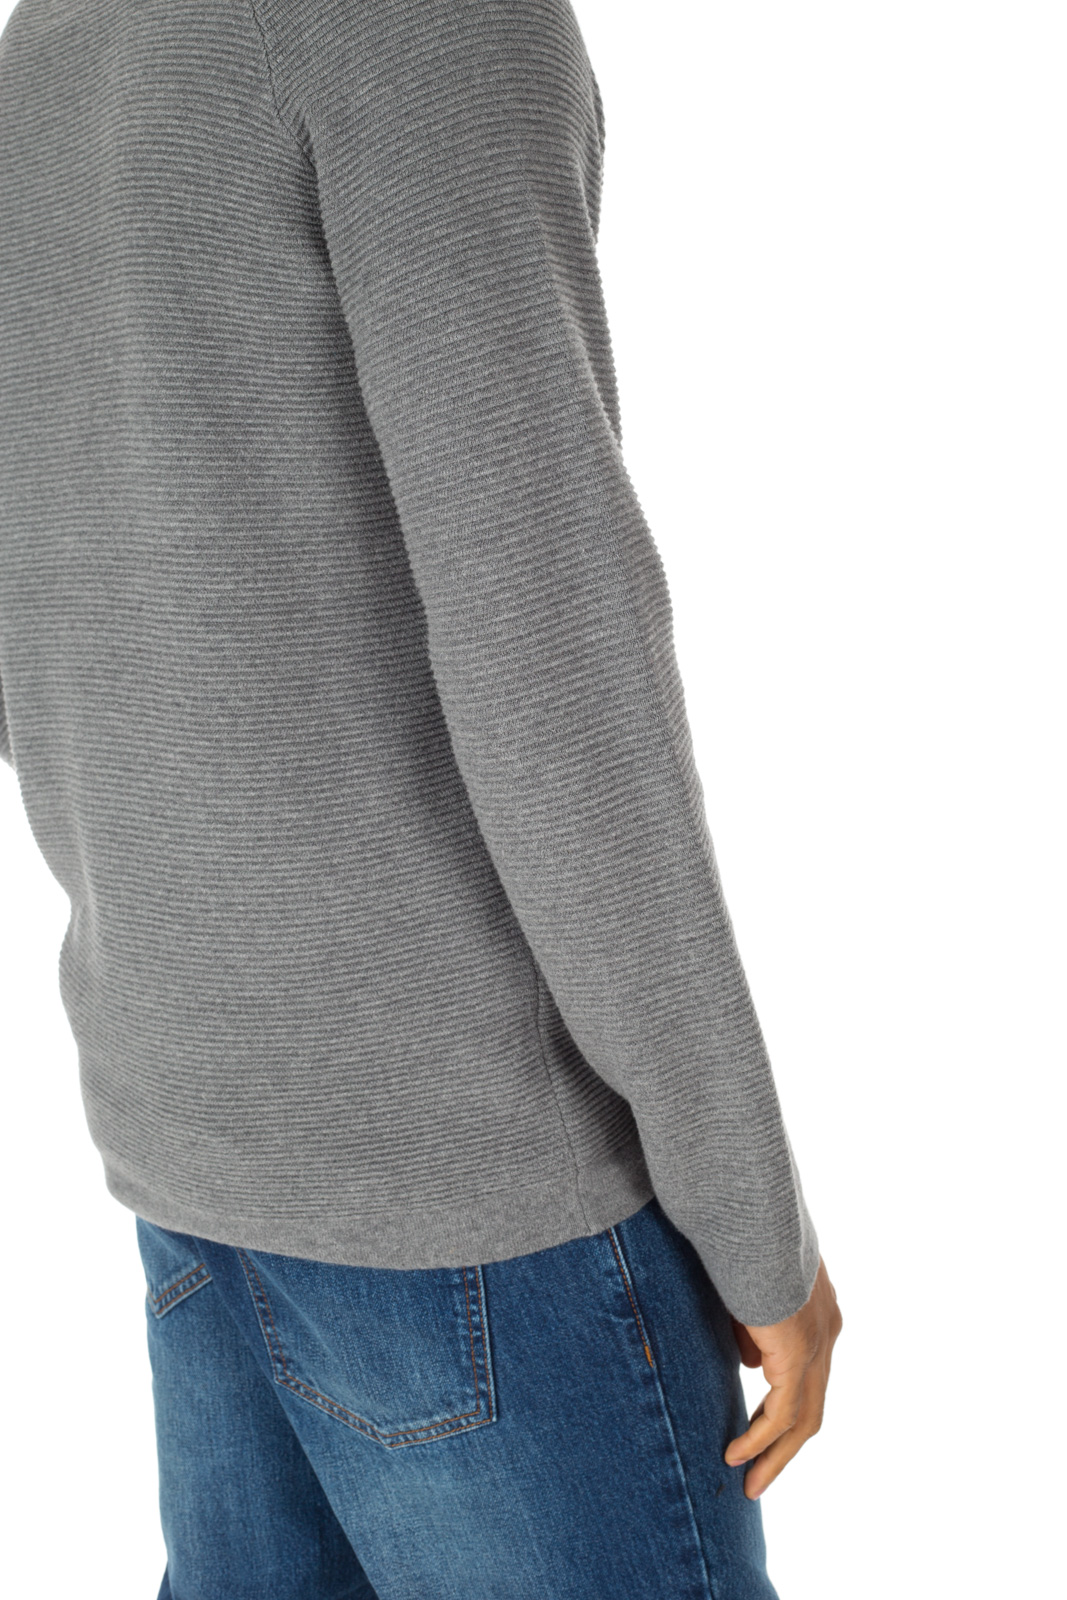 Minimum - Hanson Sweater Dark Gray